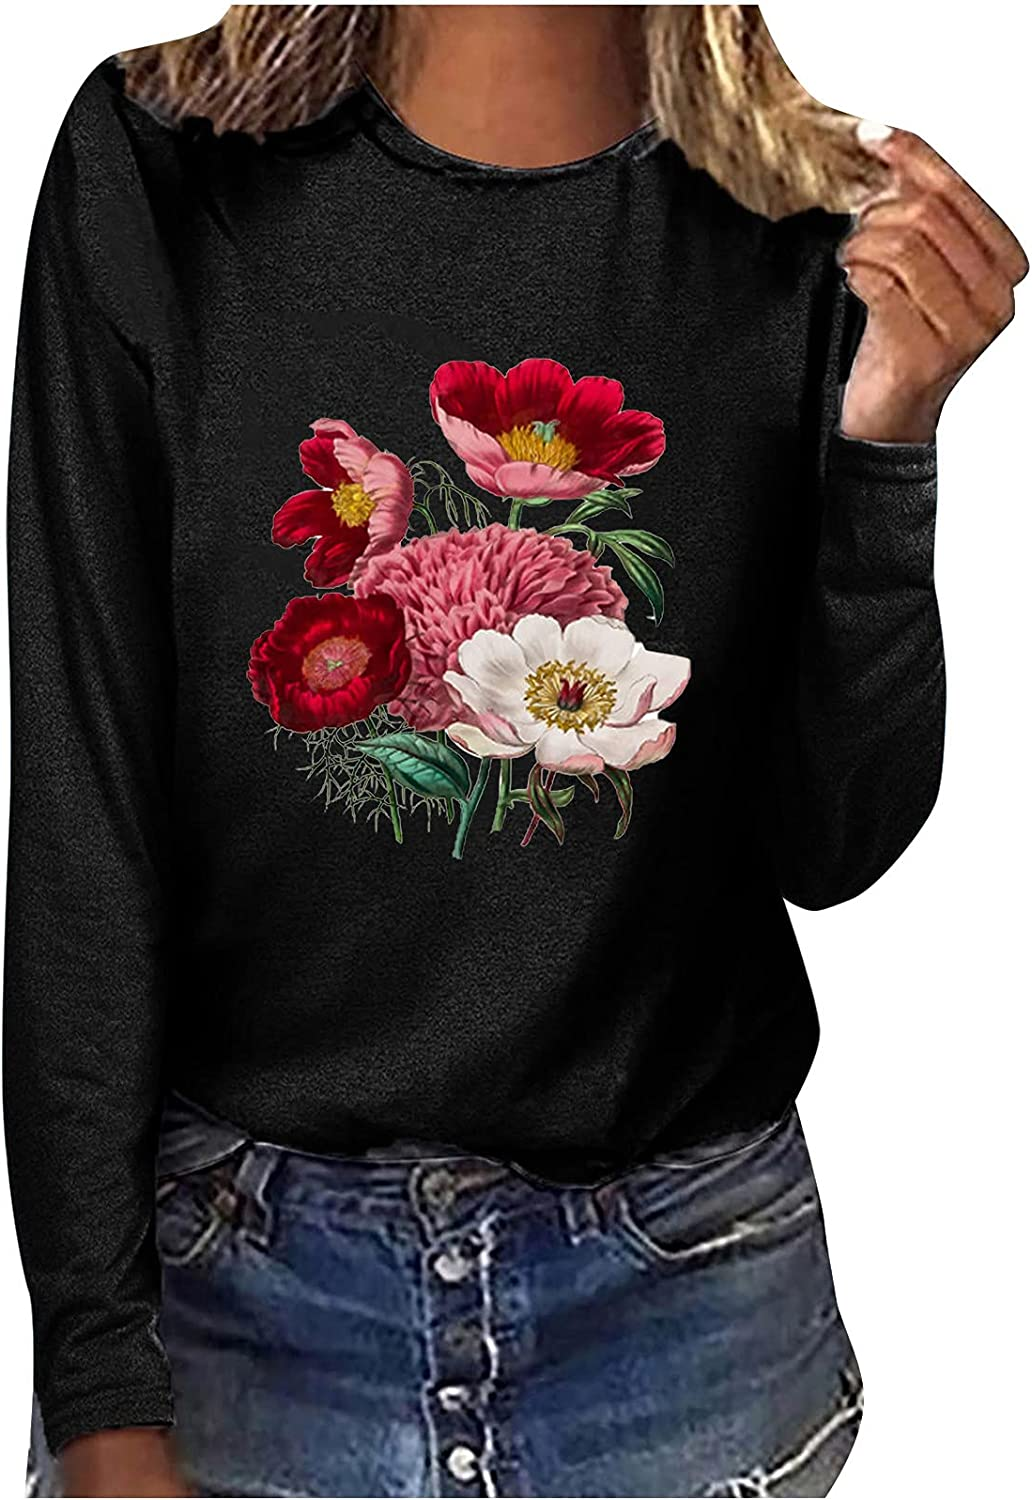 Women Long Sleeve Shirt Breast Cancer Gift Trendy Graphic Top Casual Crewneck Sweatshirt Loose Fit Blouse Workout Tee